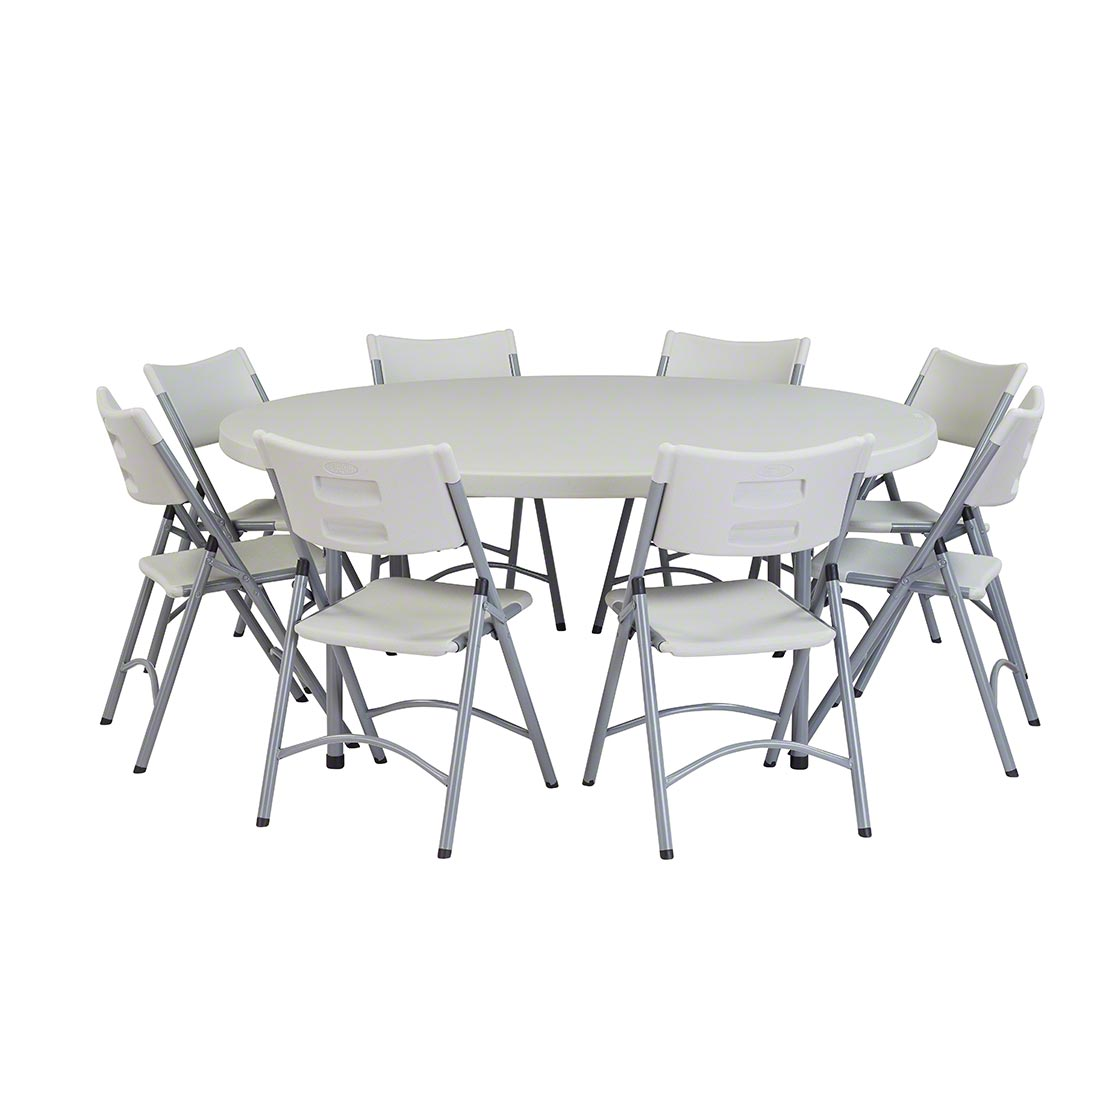 National Public Seating 71 Round Folding Table Molded Plastic Chairs Package